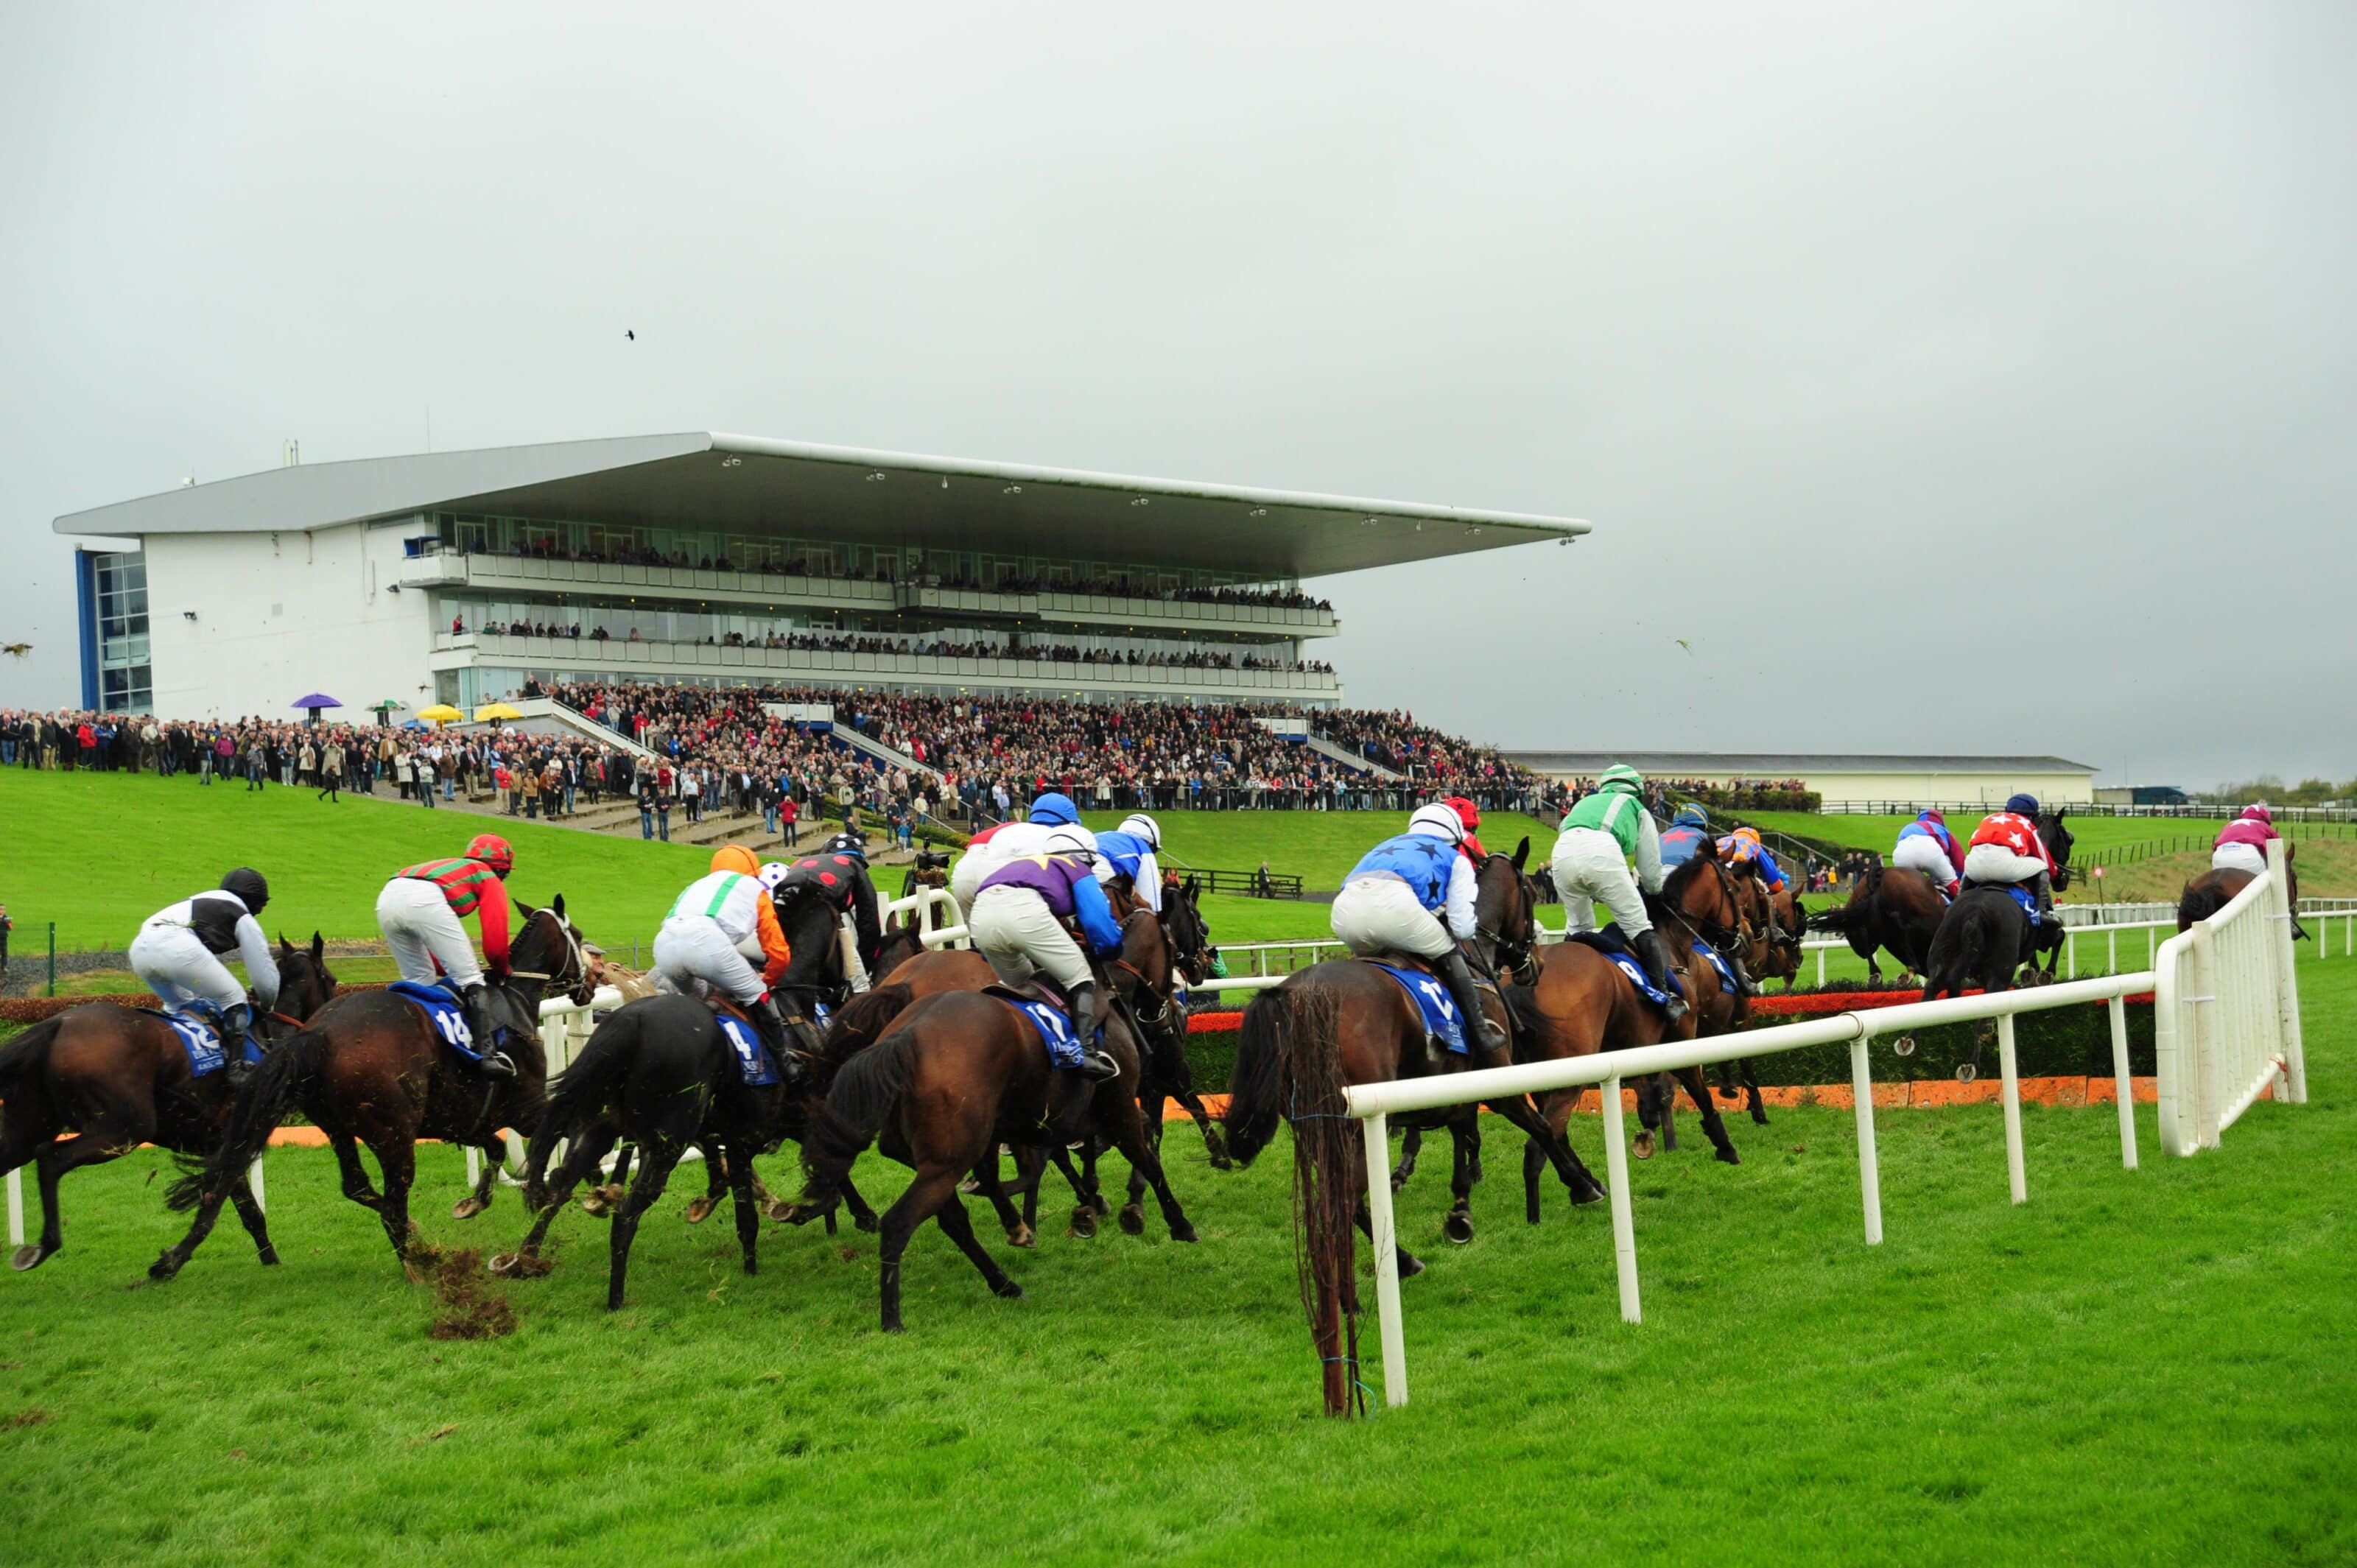 Limerick Racecourse Great day out